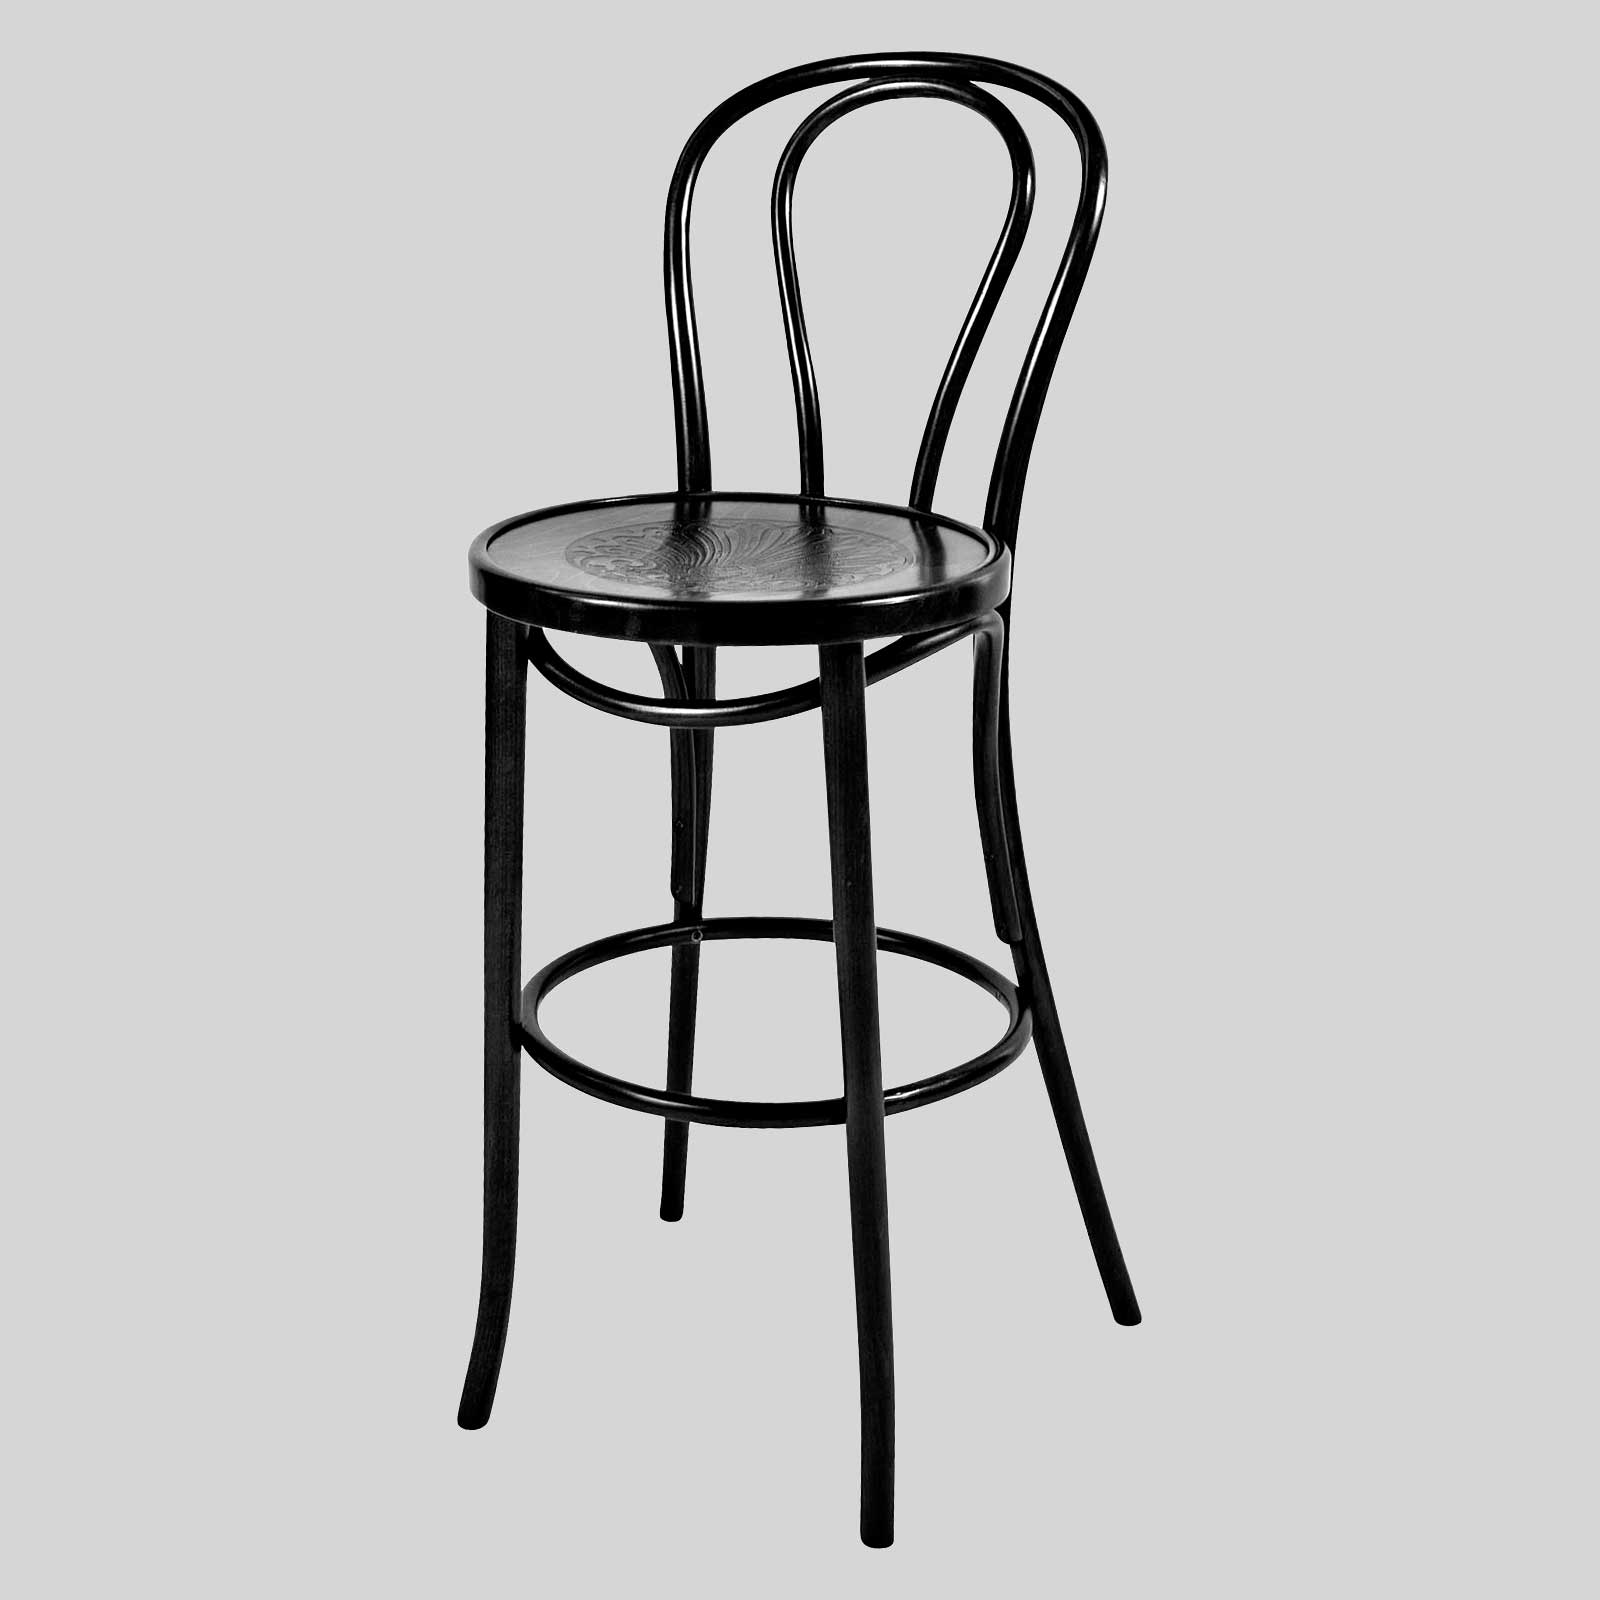 Pleasing Bentwood Barstools Classique Concept Collections Pabps2019 Chair Design Images Pabps2019Com